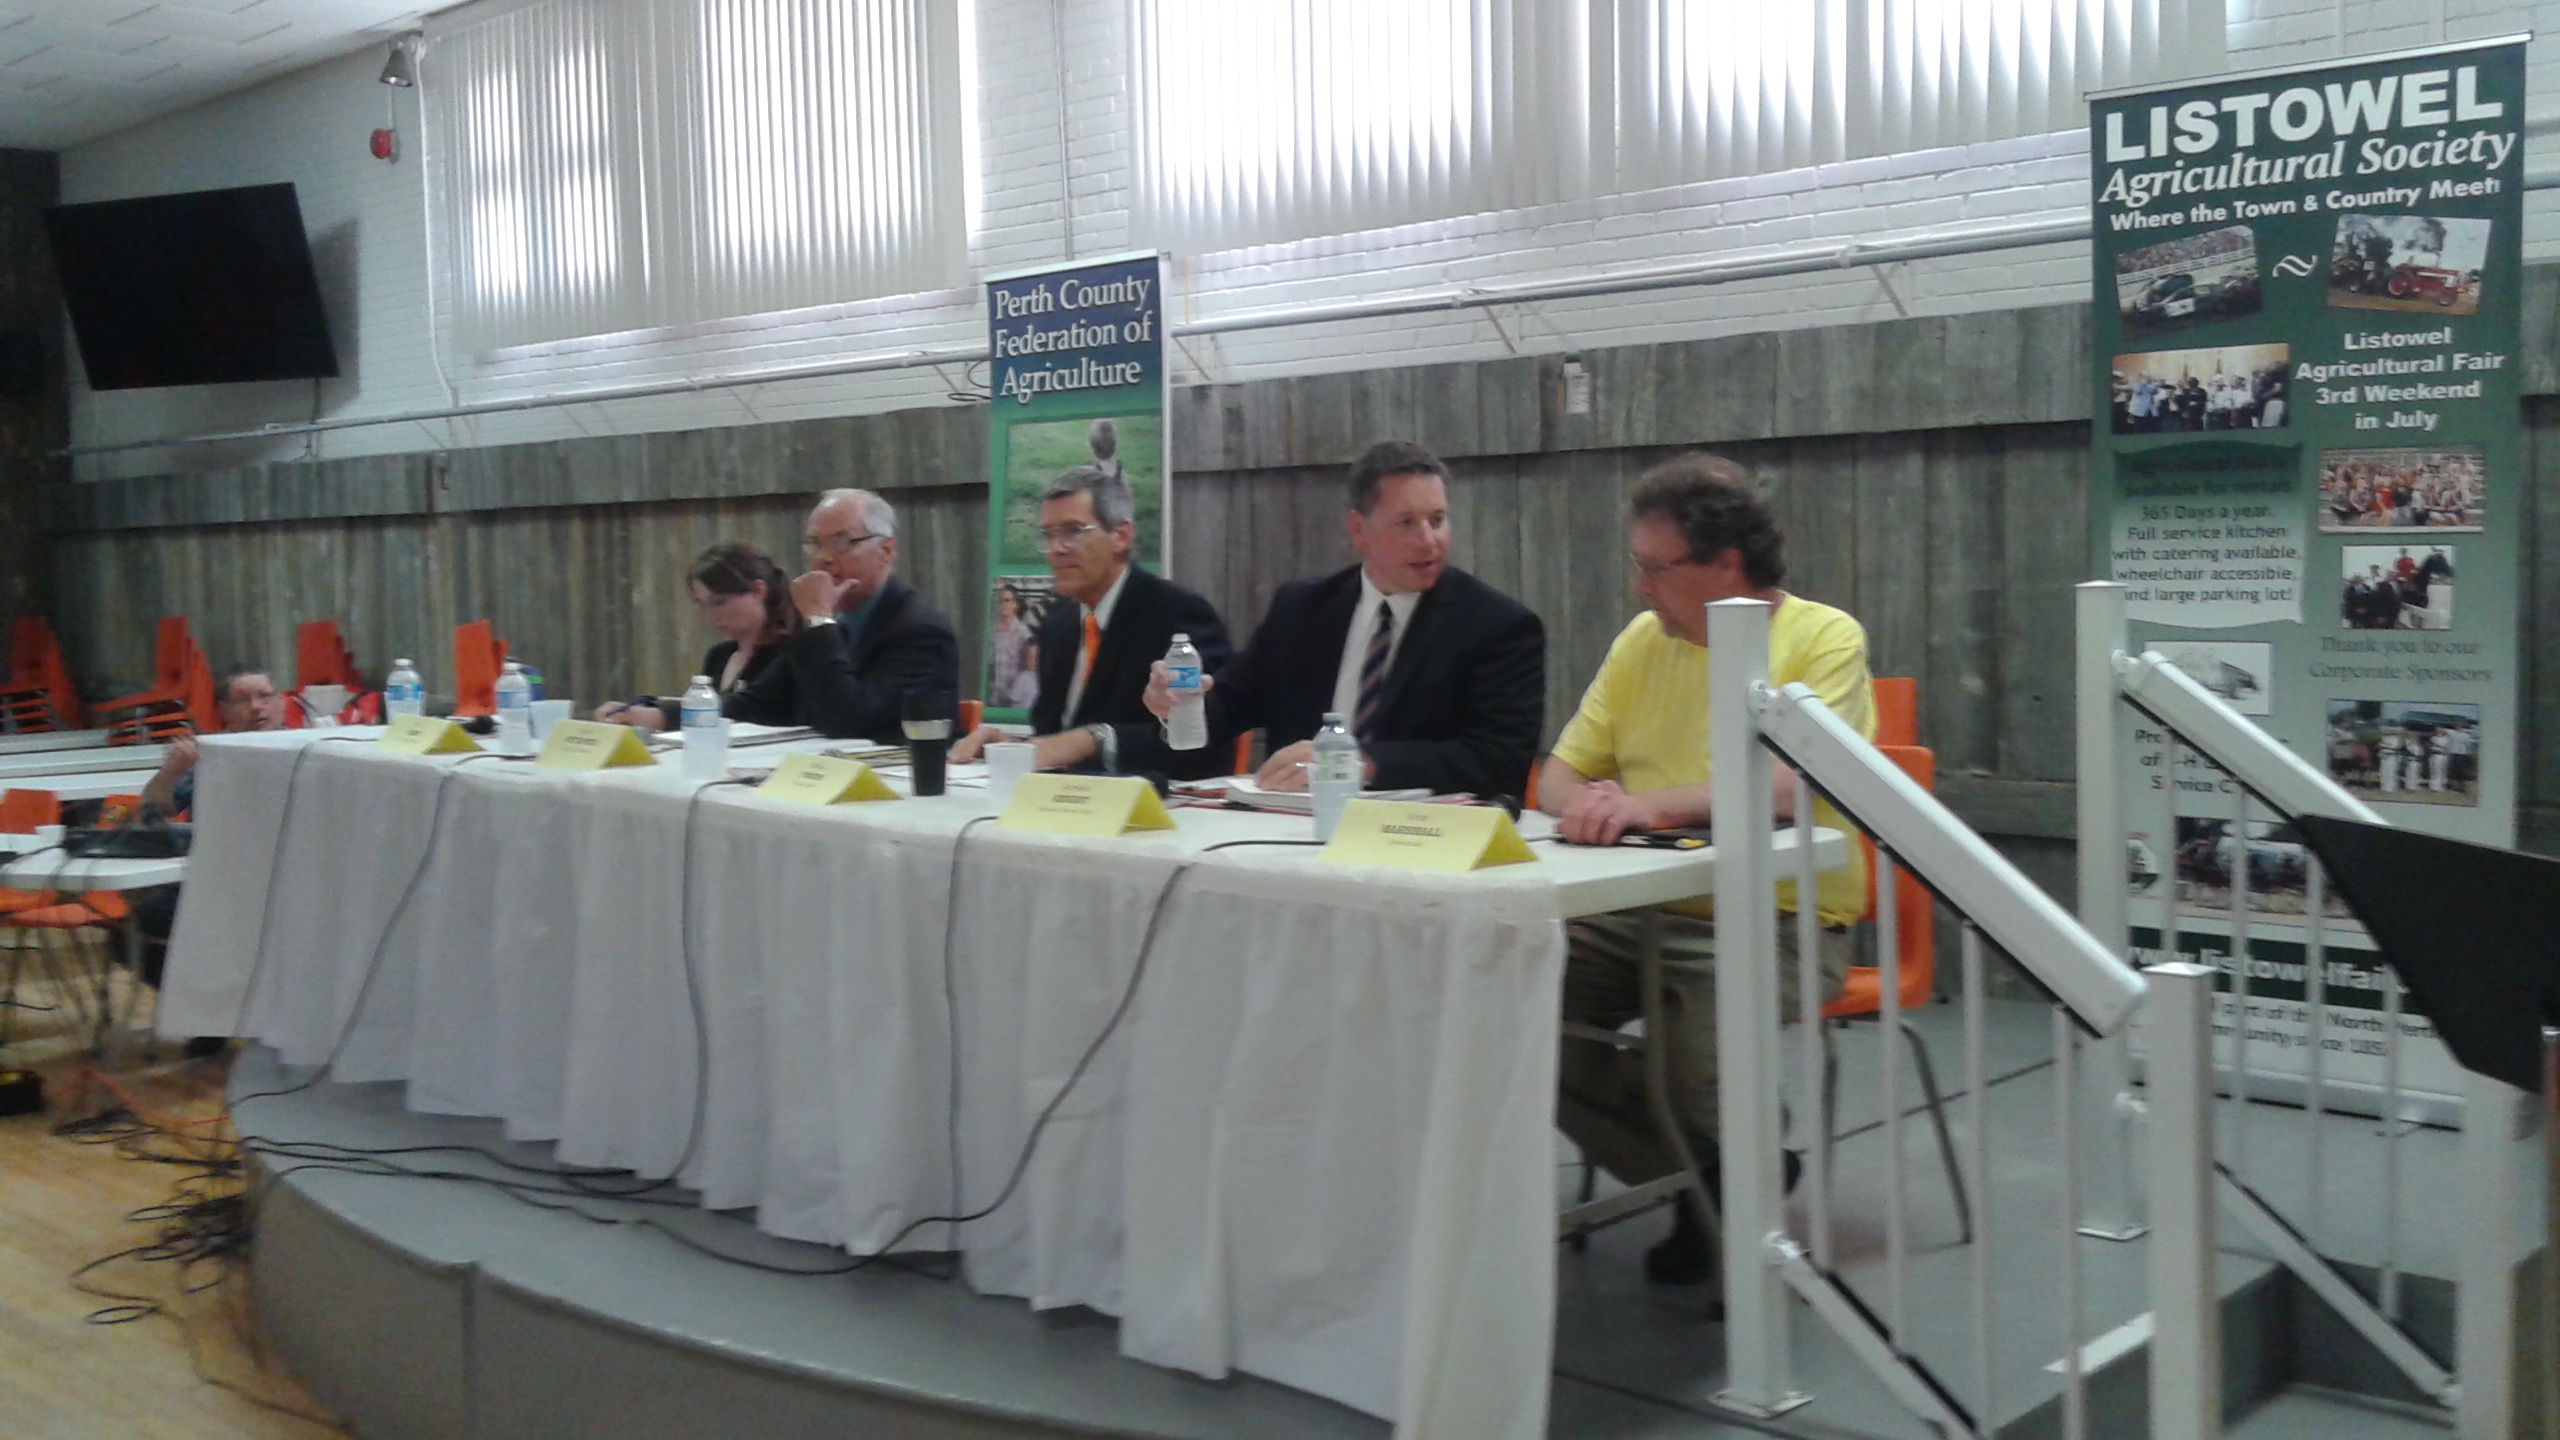 Perth-Wellington All-Candidates Meeting In Listowel